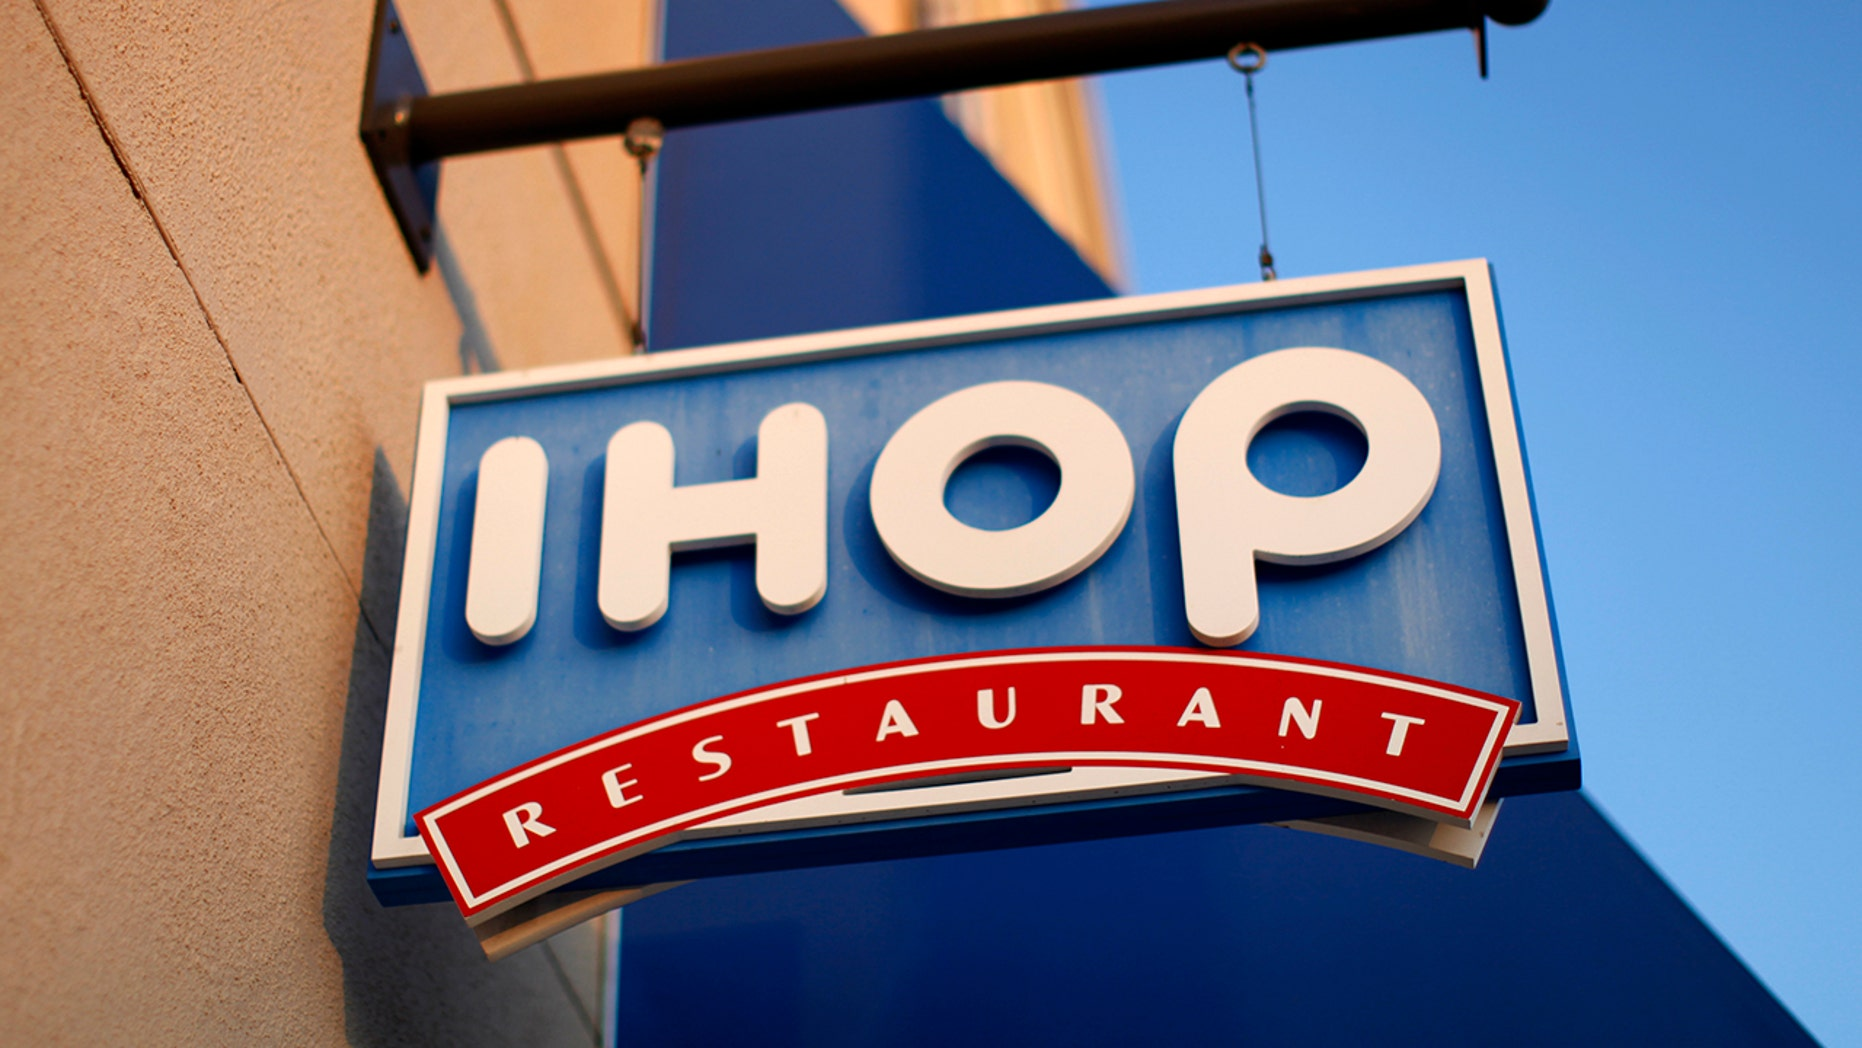 IHOP has also announced its opening its menu to alcohol.